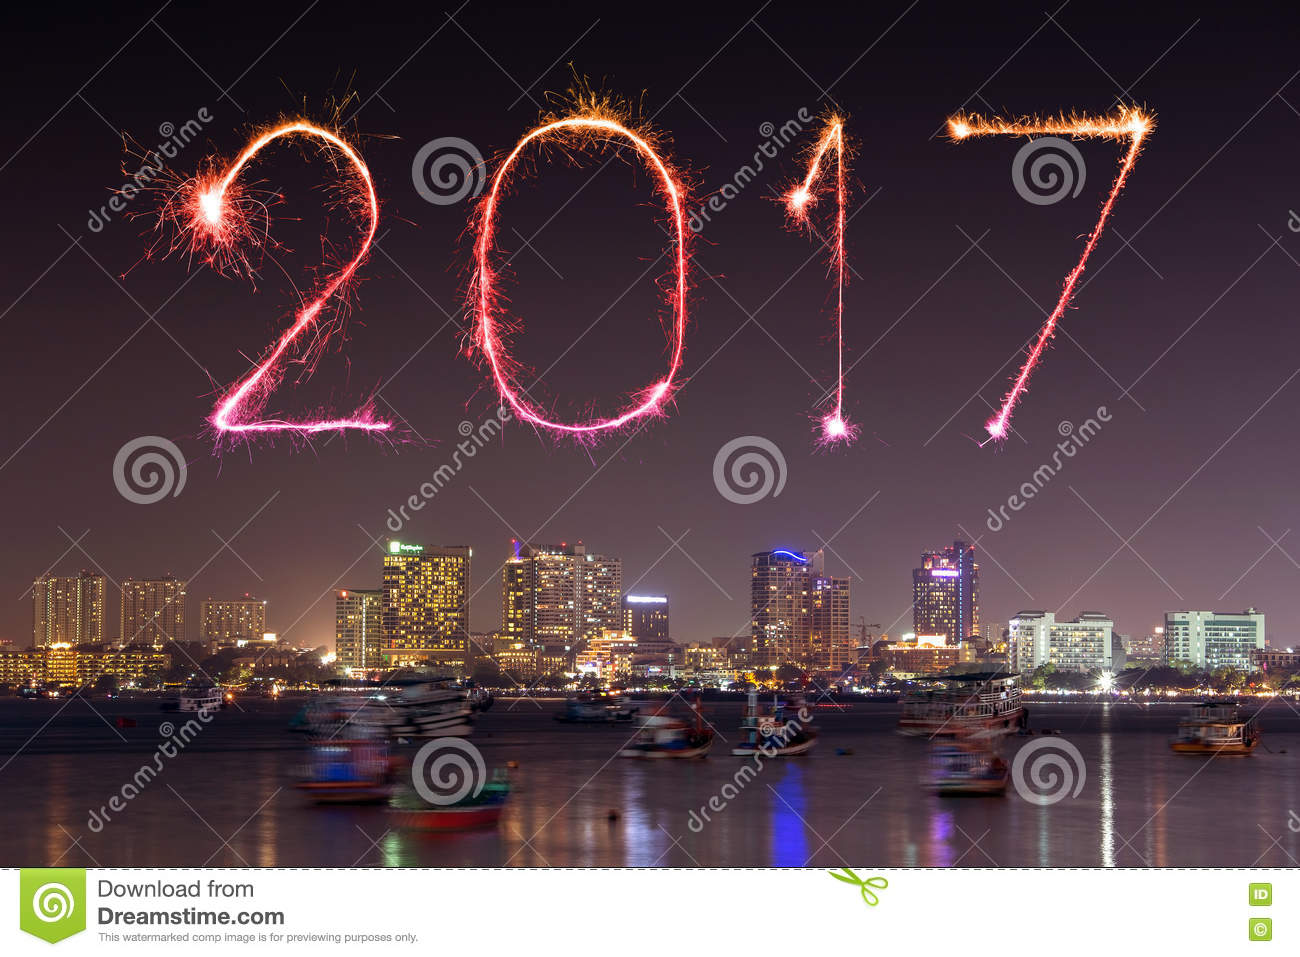 2017 happy new year fireworks celebrating over pattaya beach at night thailand